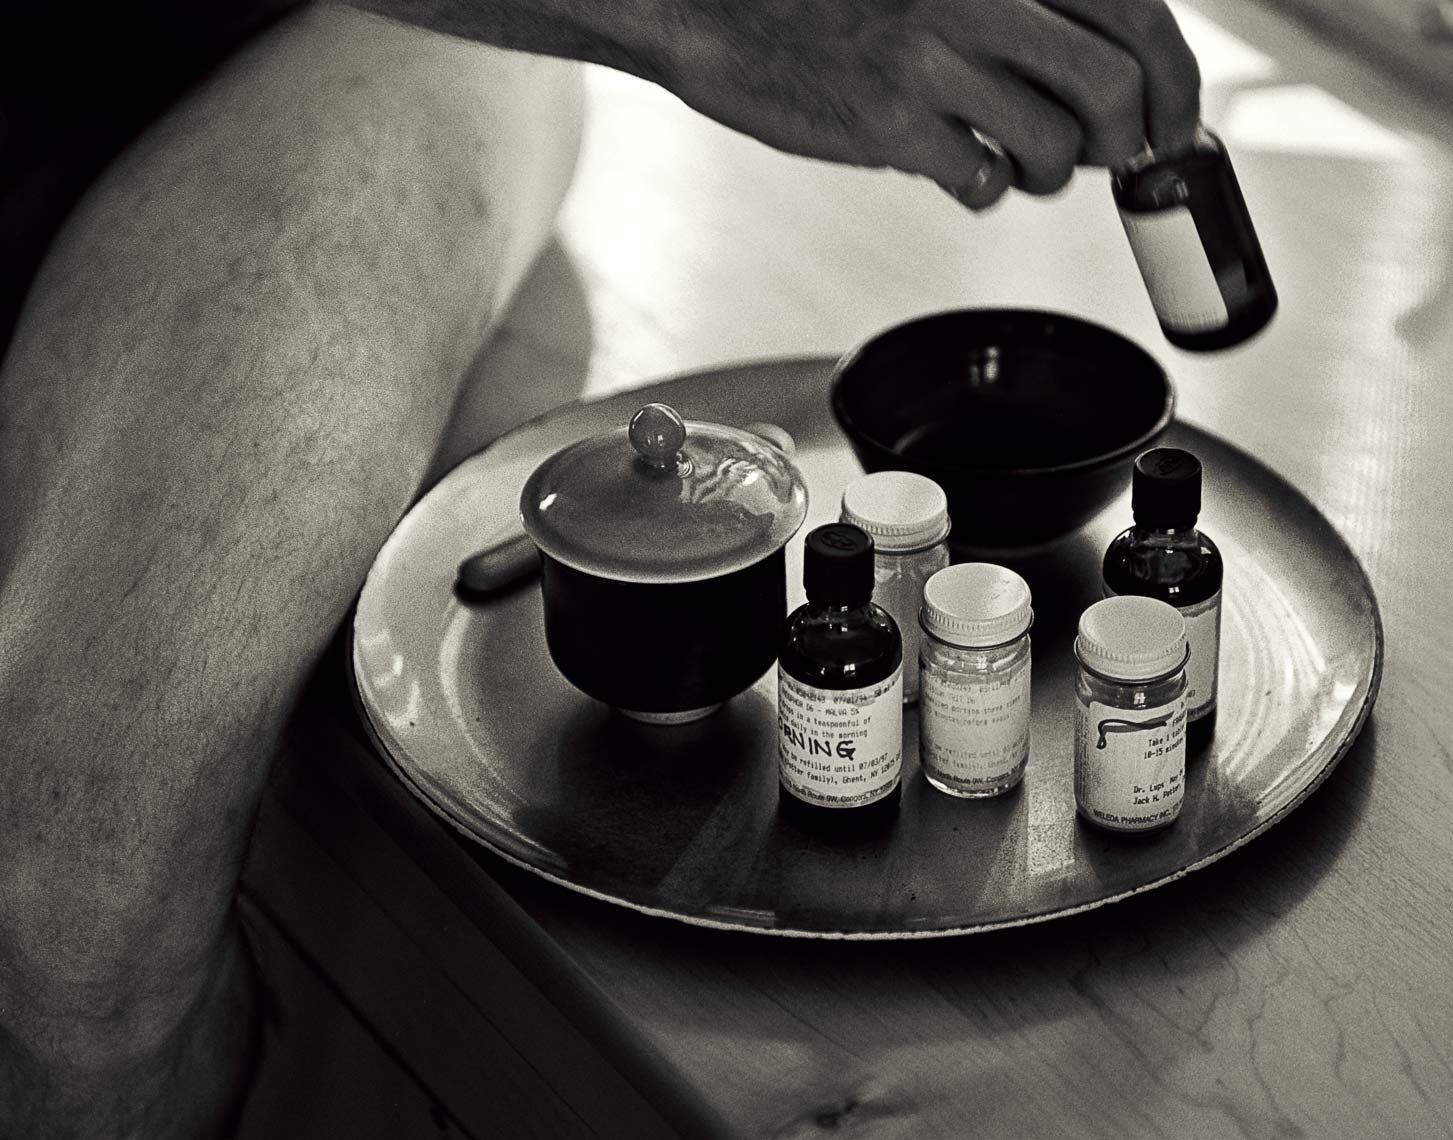 David Lebe; Morning Ritual 30A, 1994, black and white photograph about living with AIDS